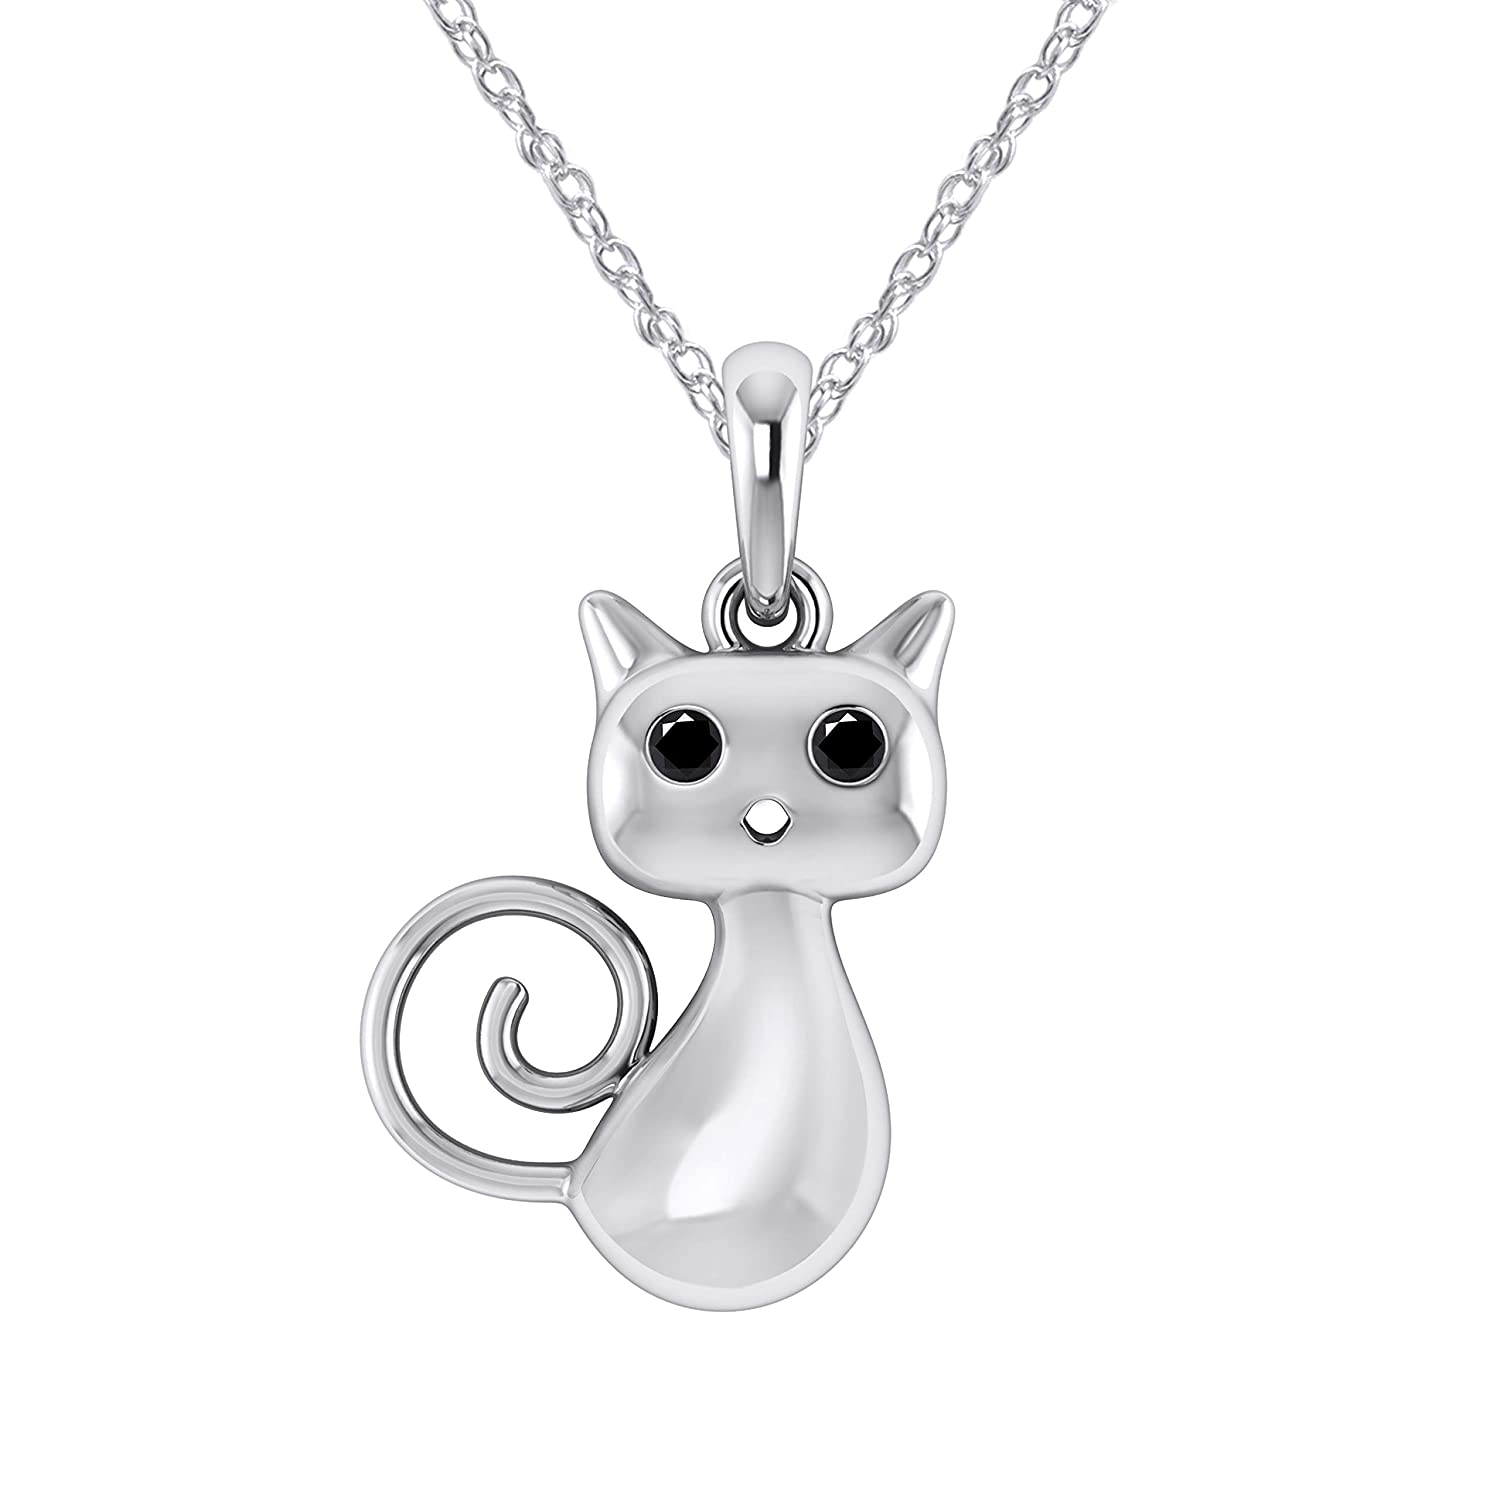 Pretty Jewels 0.05 Ct Black Real Diamond in 14K White Gold Fn 925 Sterling Silver Curly-Tail Kitty Pendant Necklace